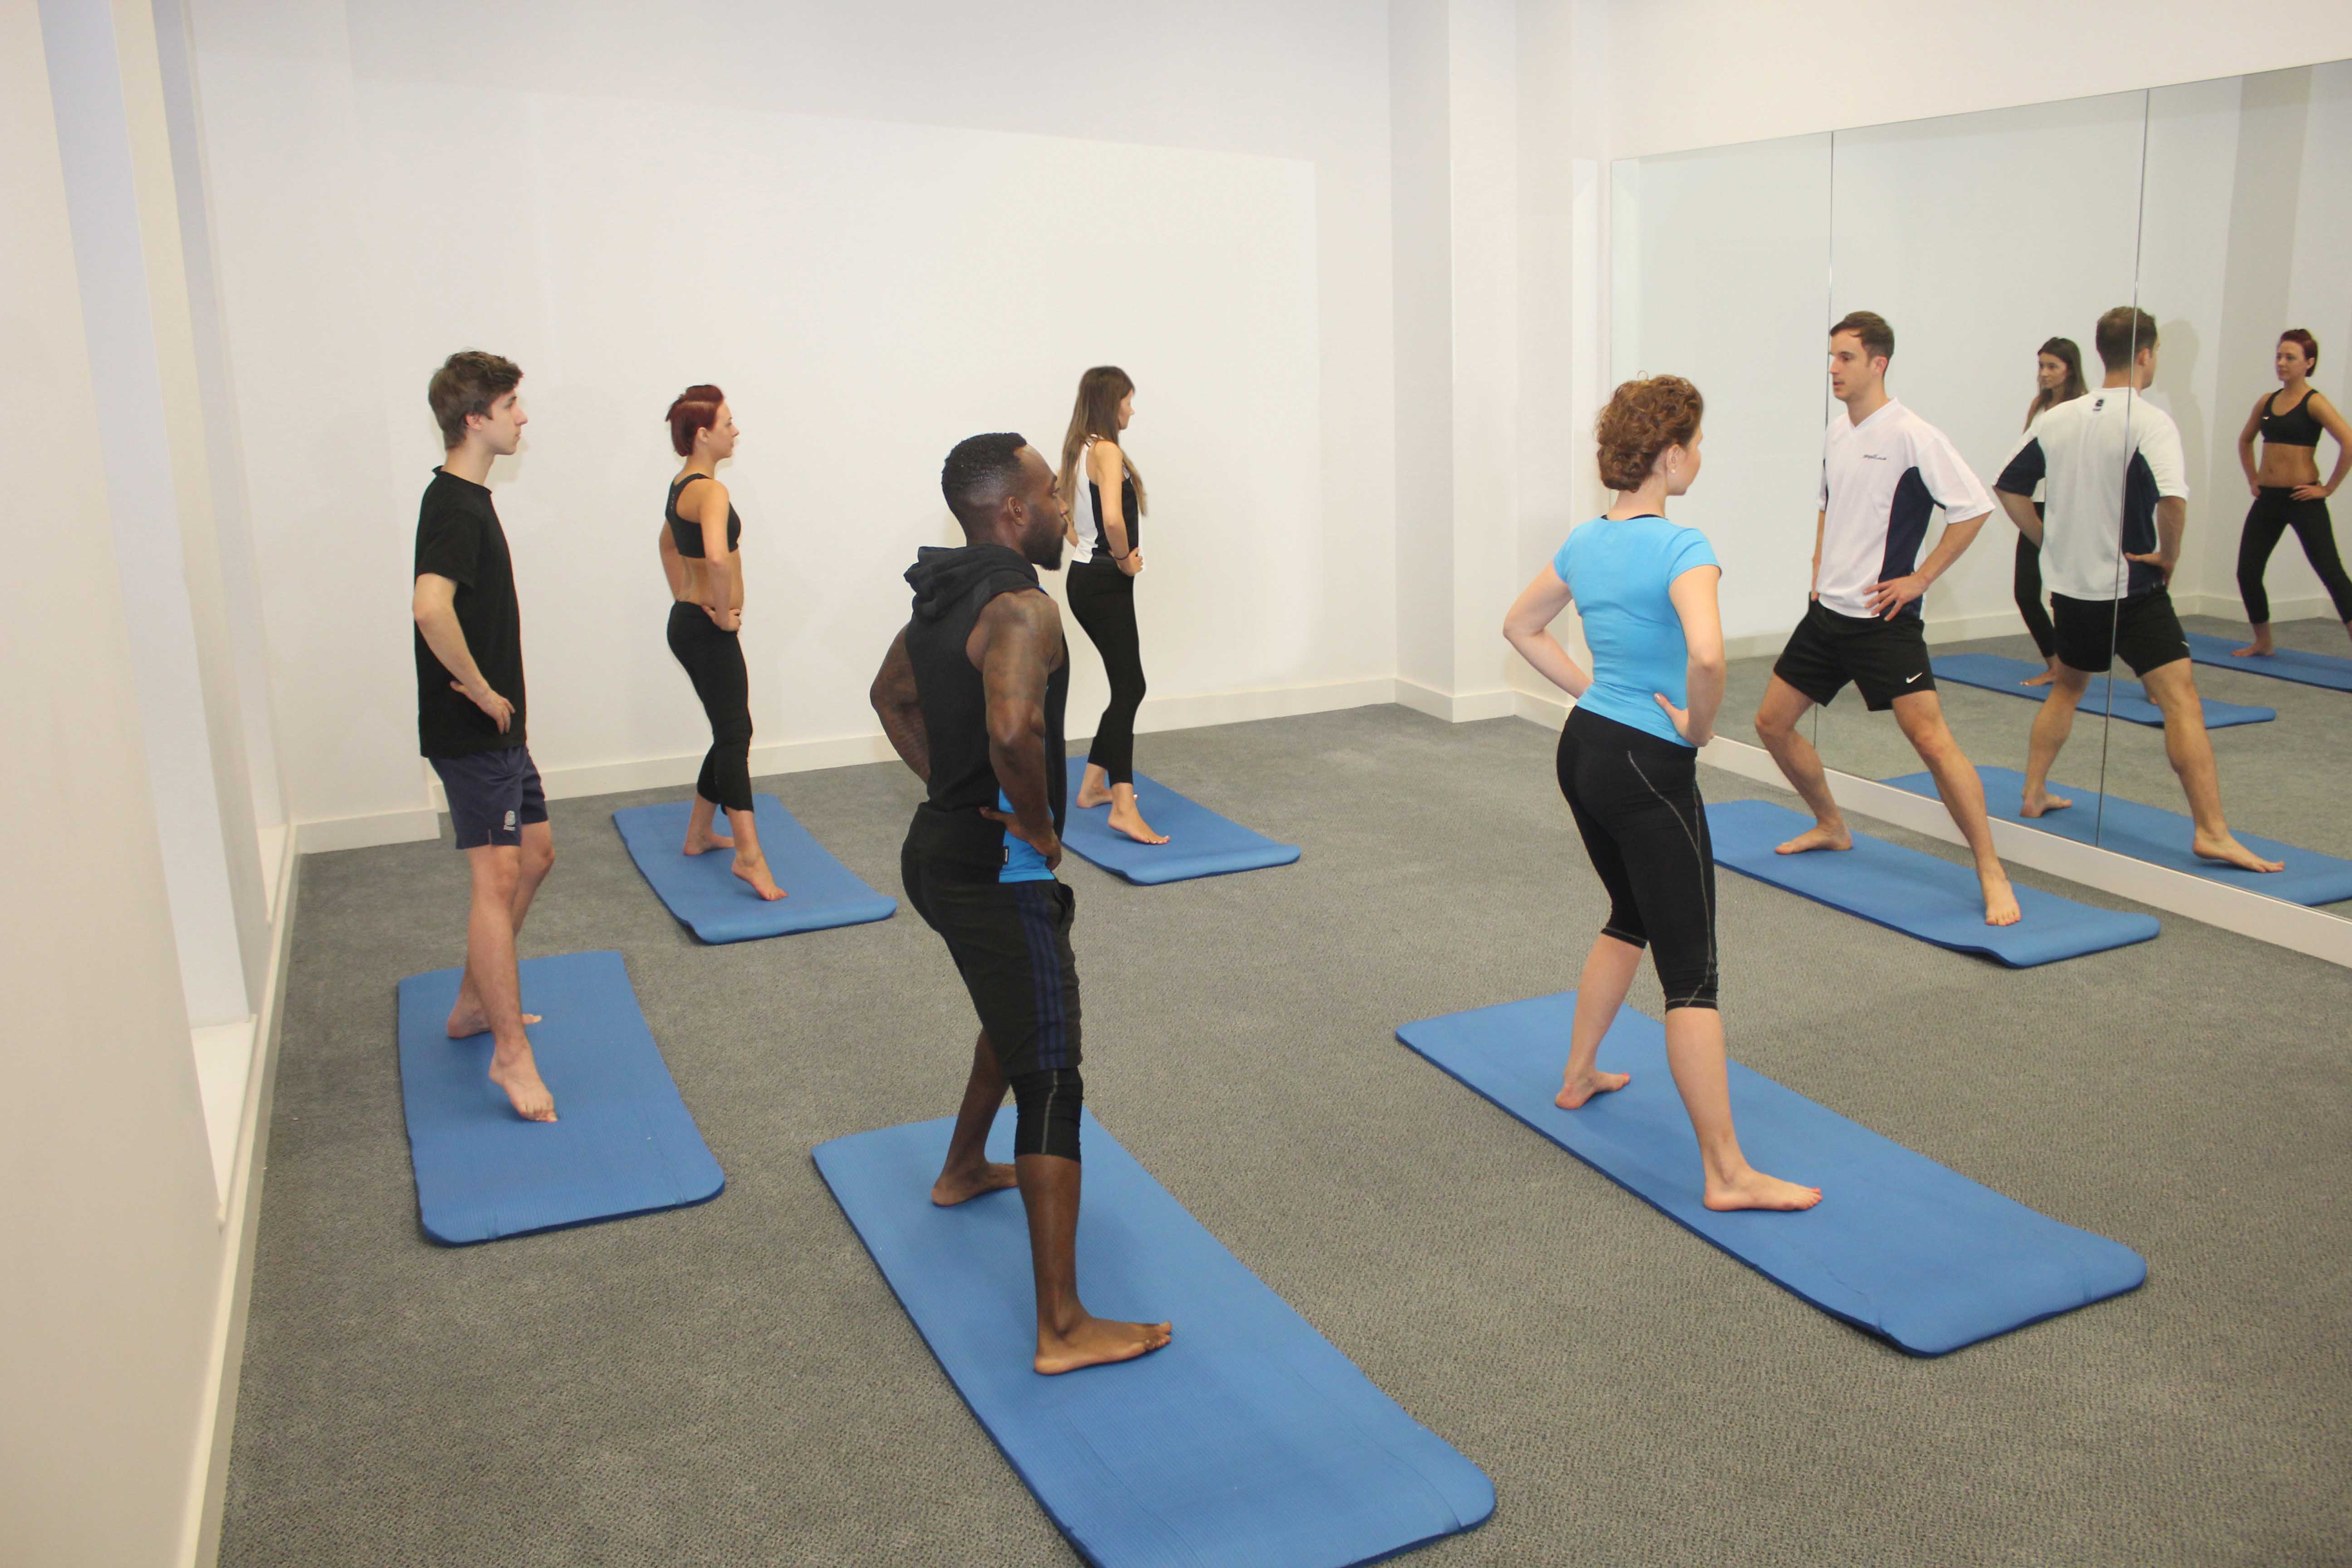 Hip abduction excercises using a resistence band supervised by a musculoskeletal physiotherapist